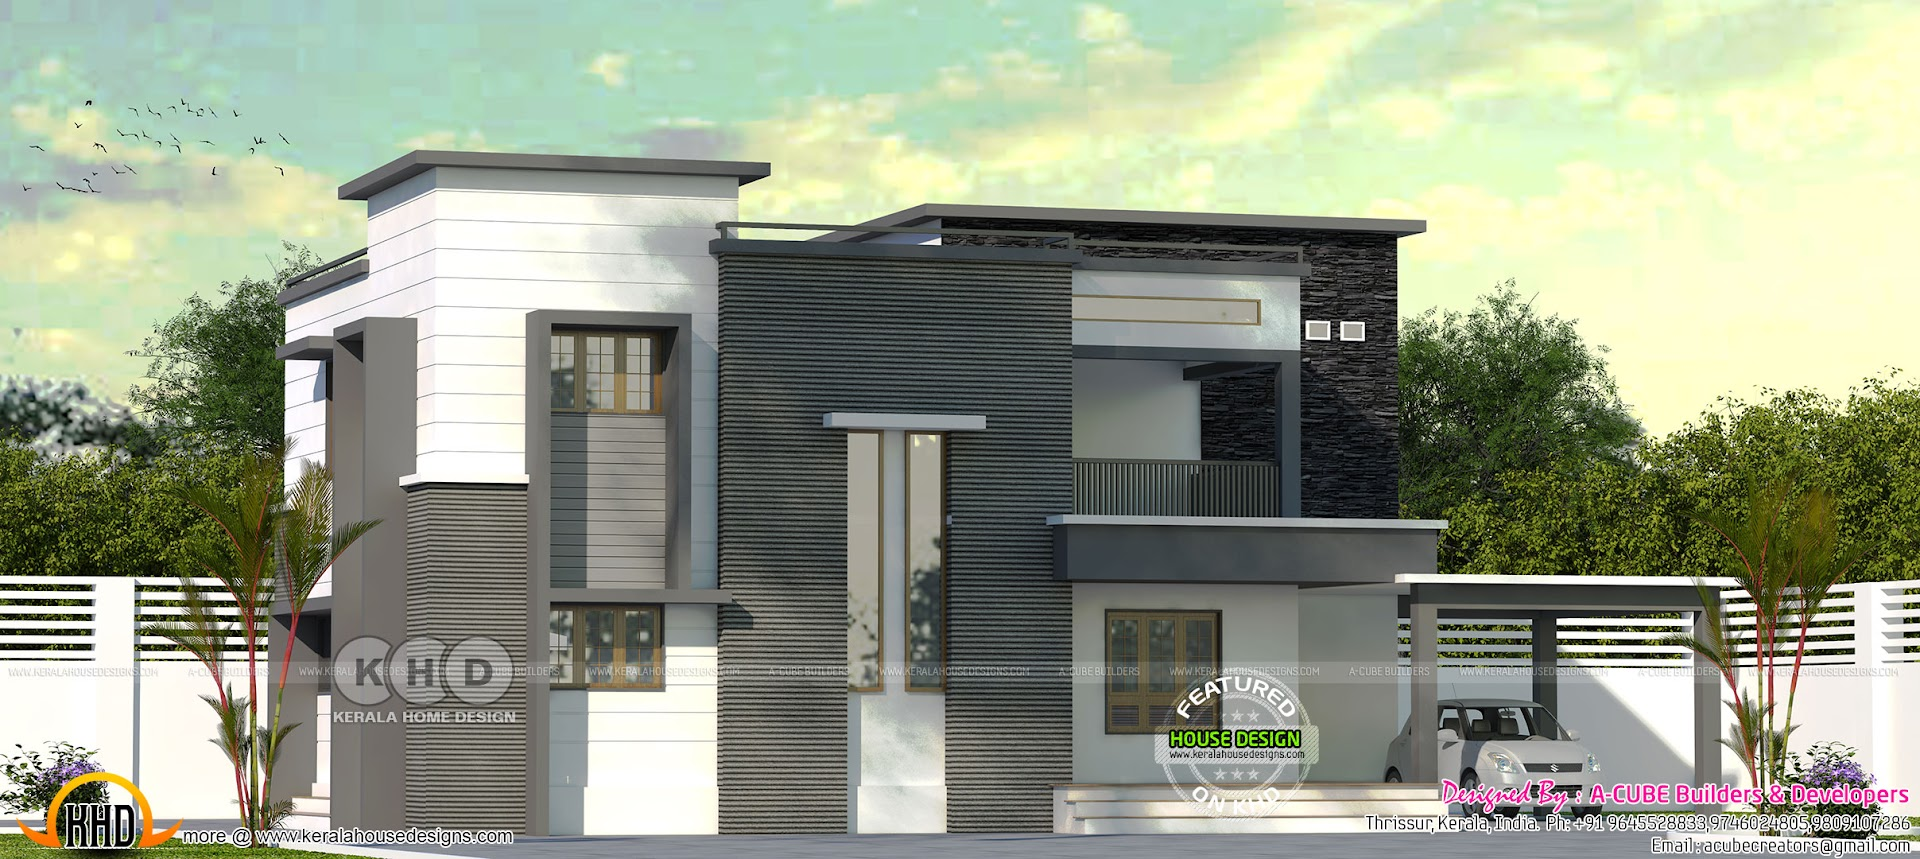 2570 square foot flat roof house plan kerala home design and